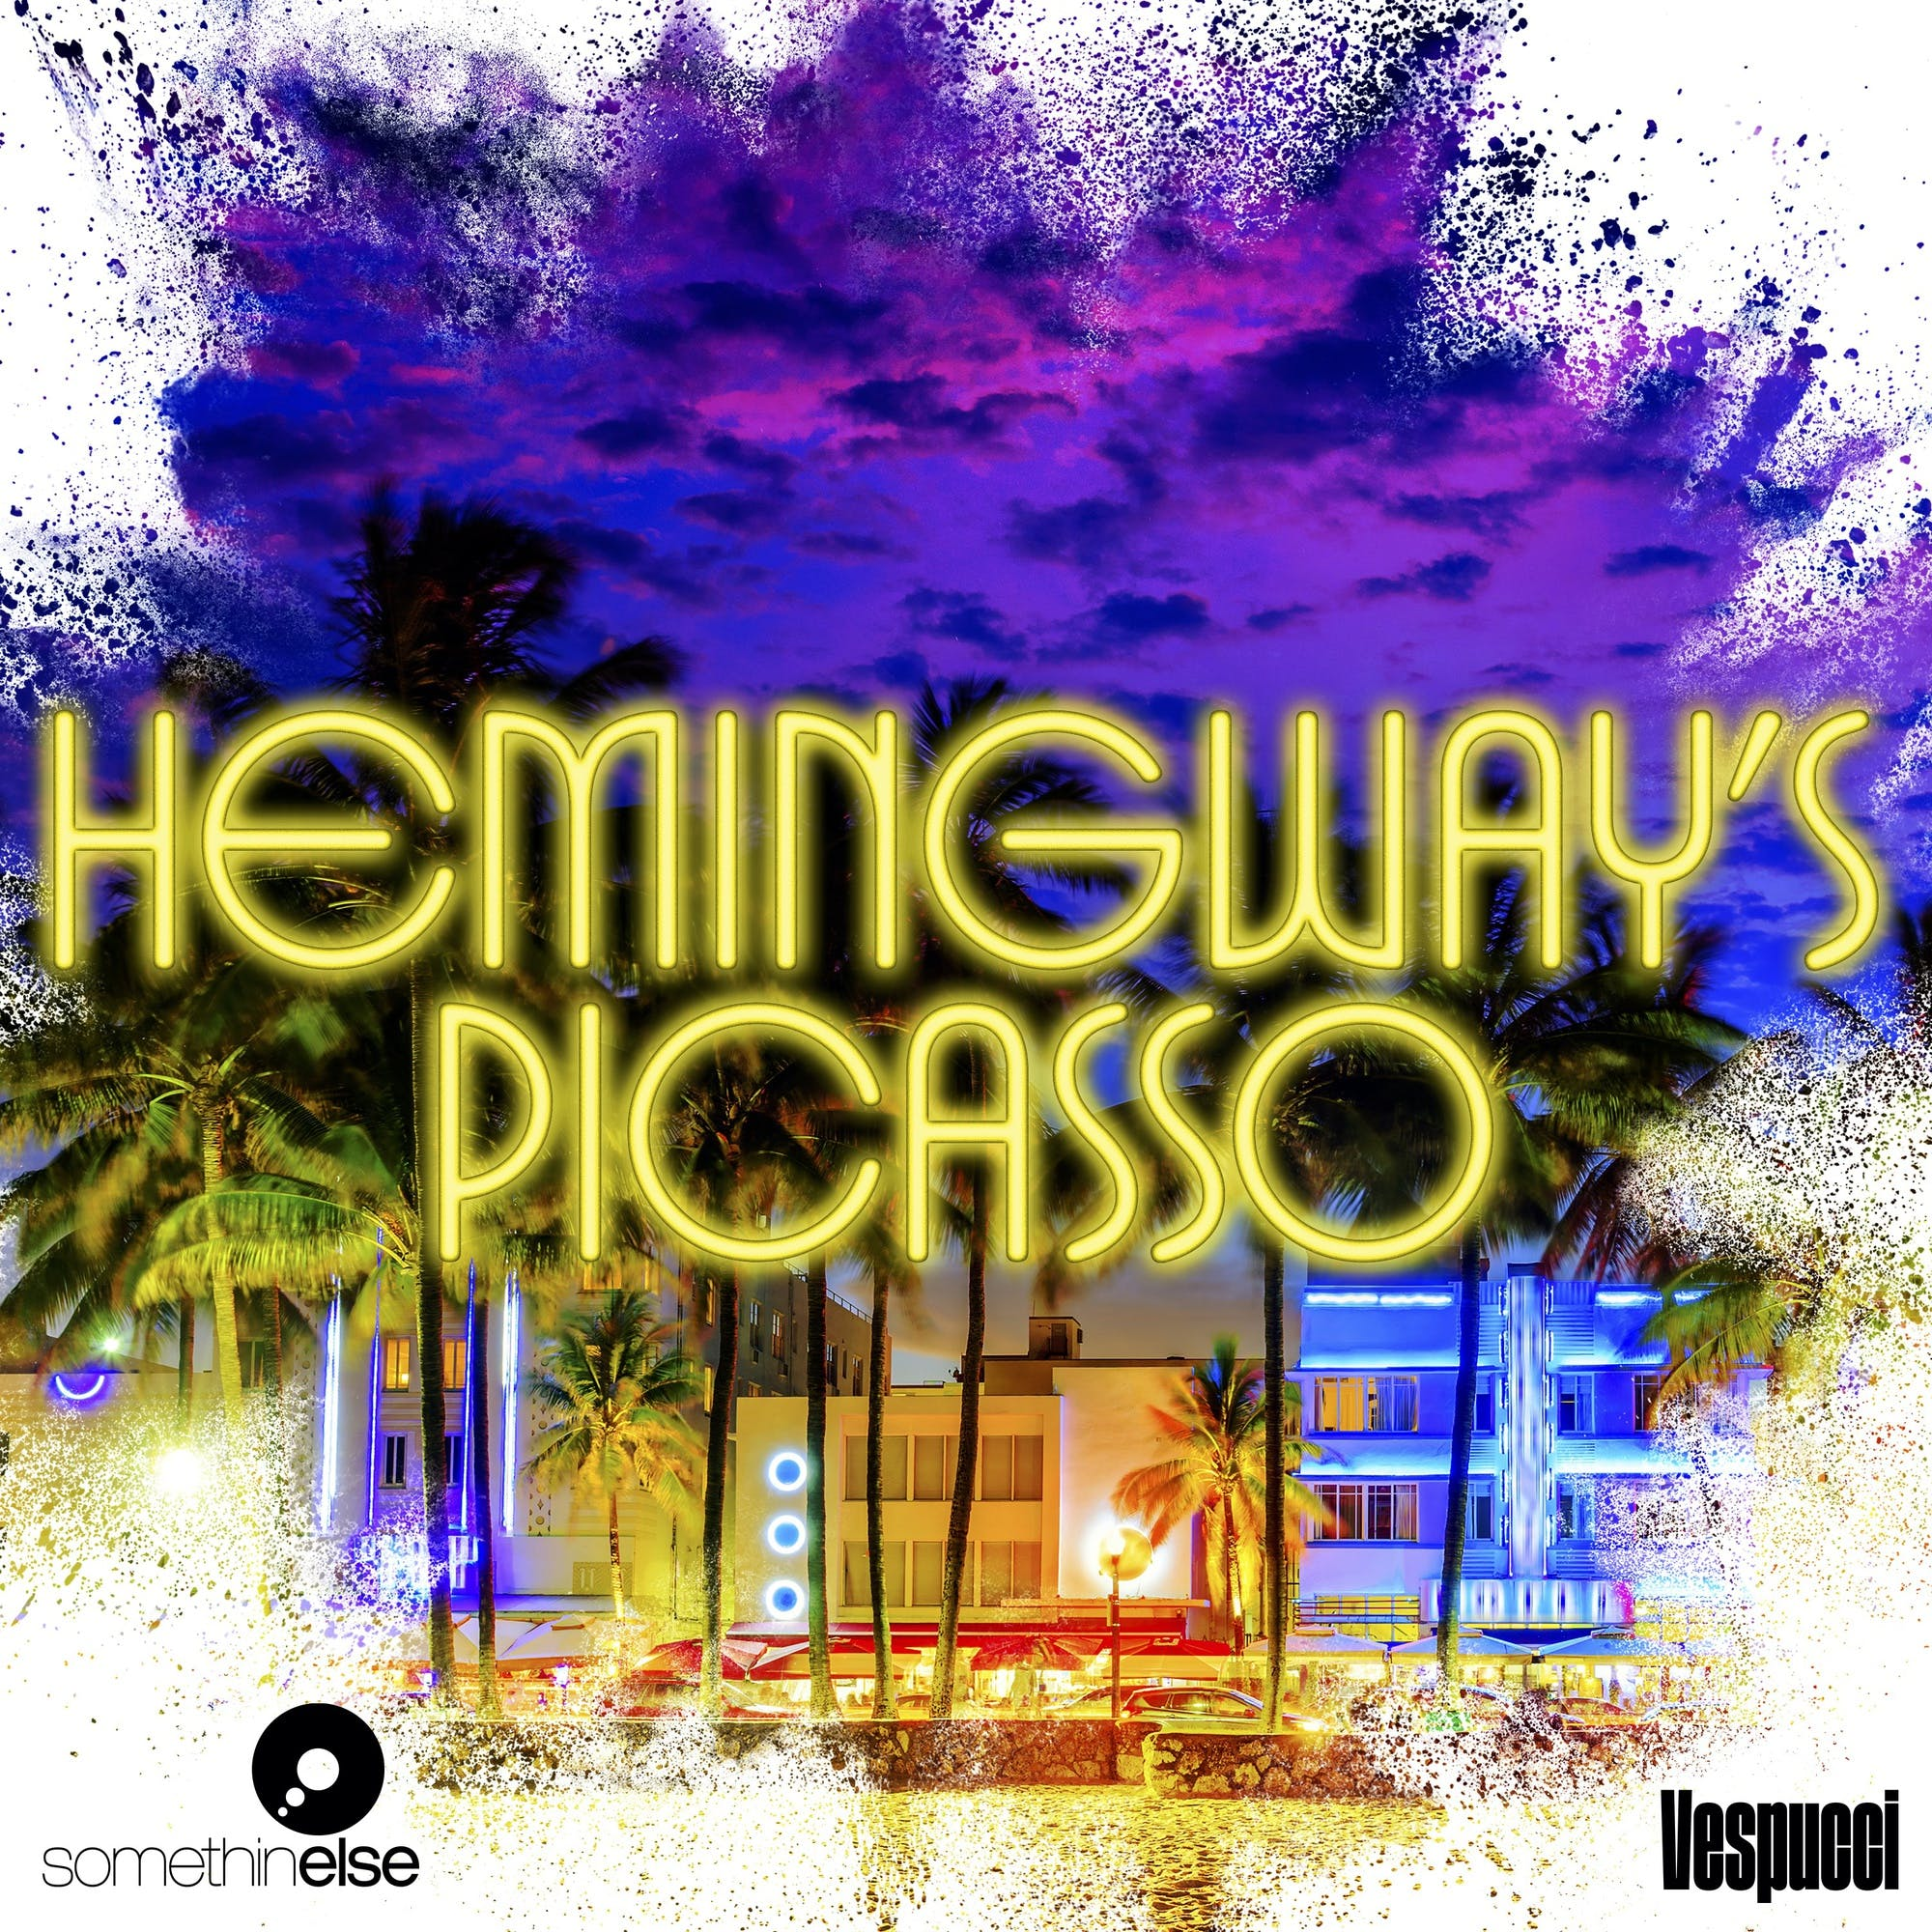 Introducing Hemingway's Picasso